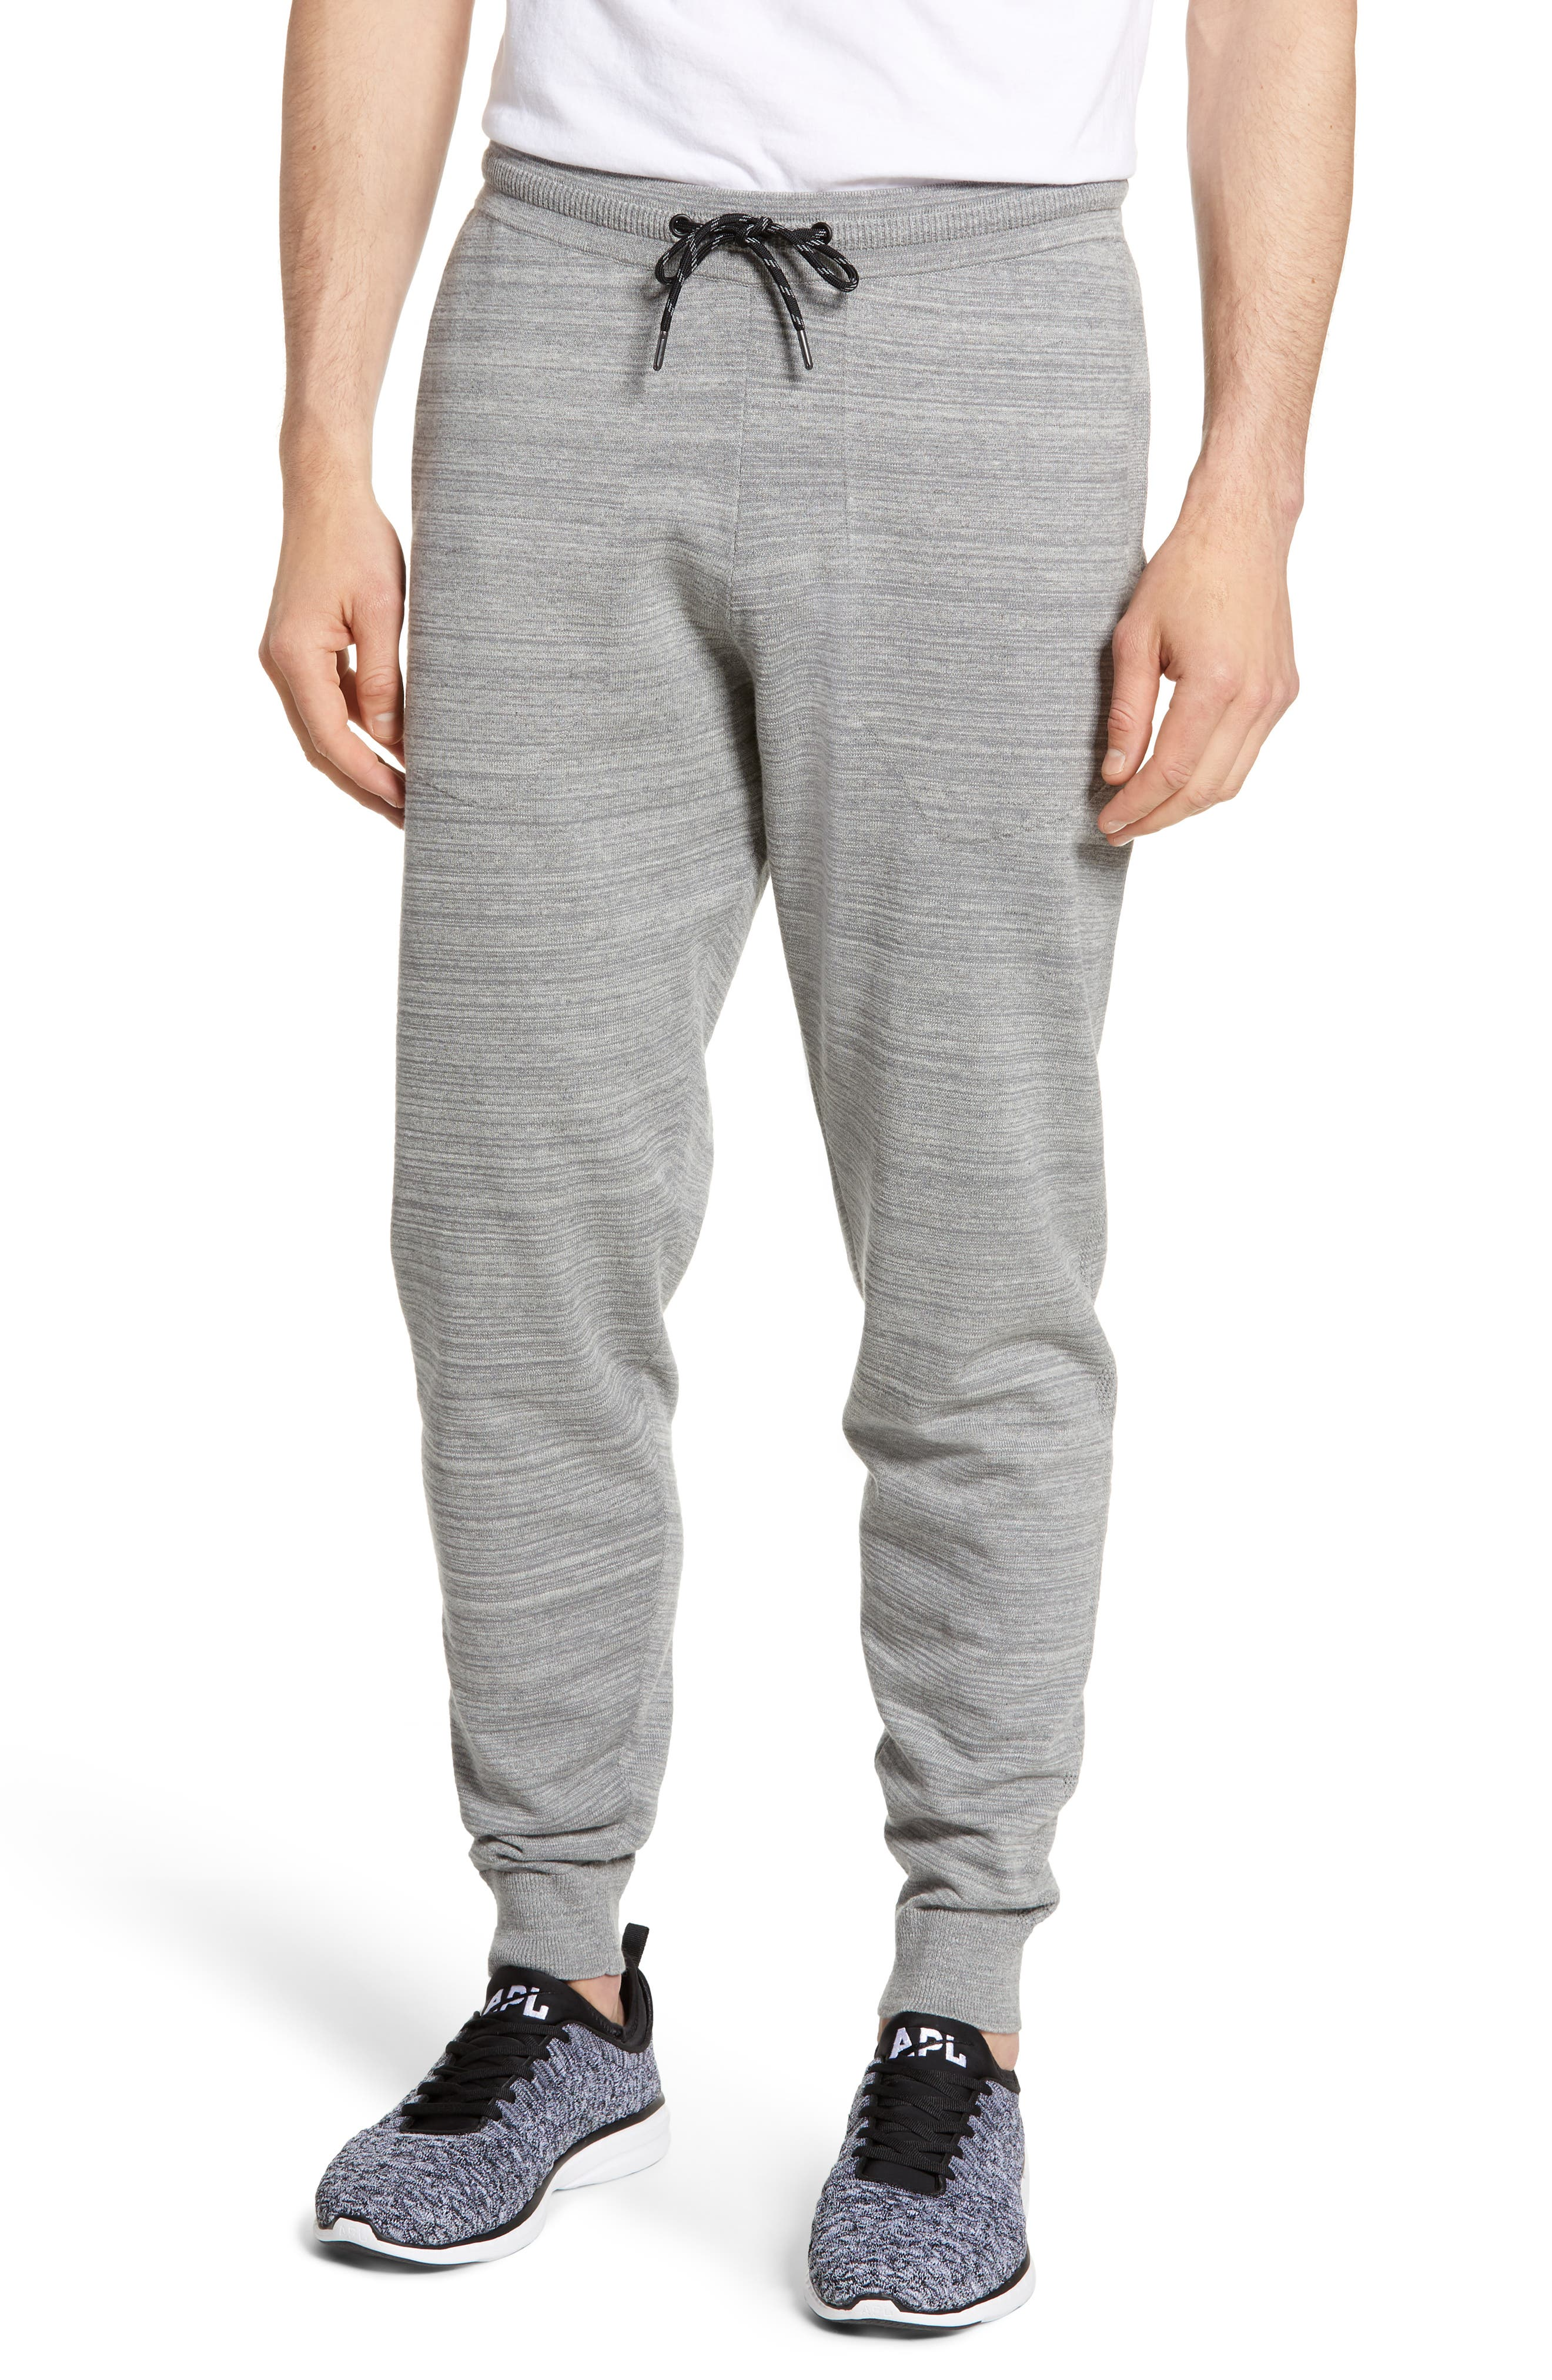 3c42abe2460 Anniversary Sale Men's Workout & Gym Clothing | Nordstrom